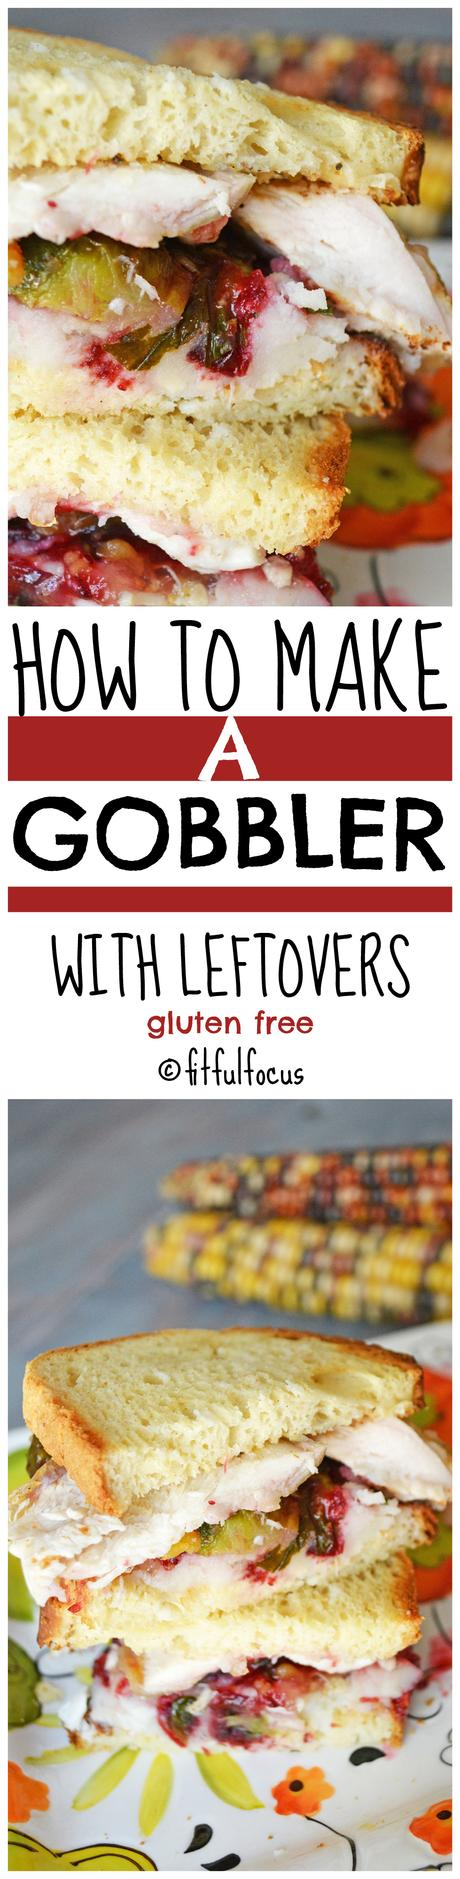 How to Make a Gobbler (gluten free)